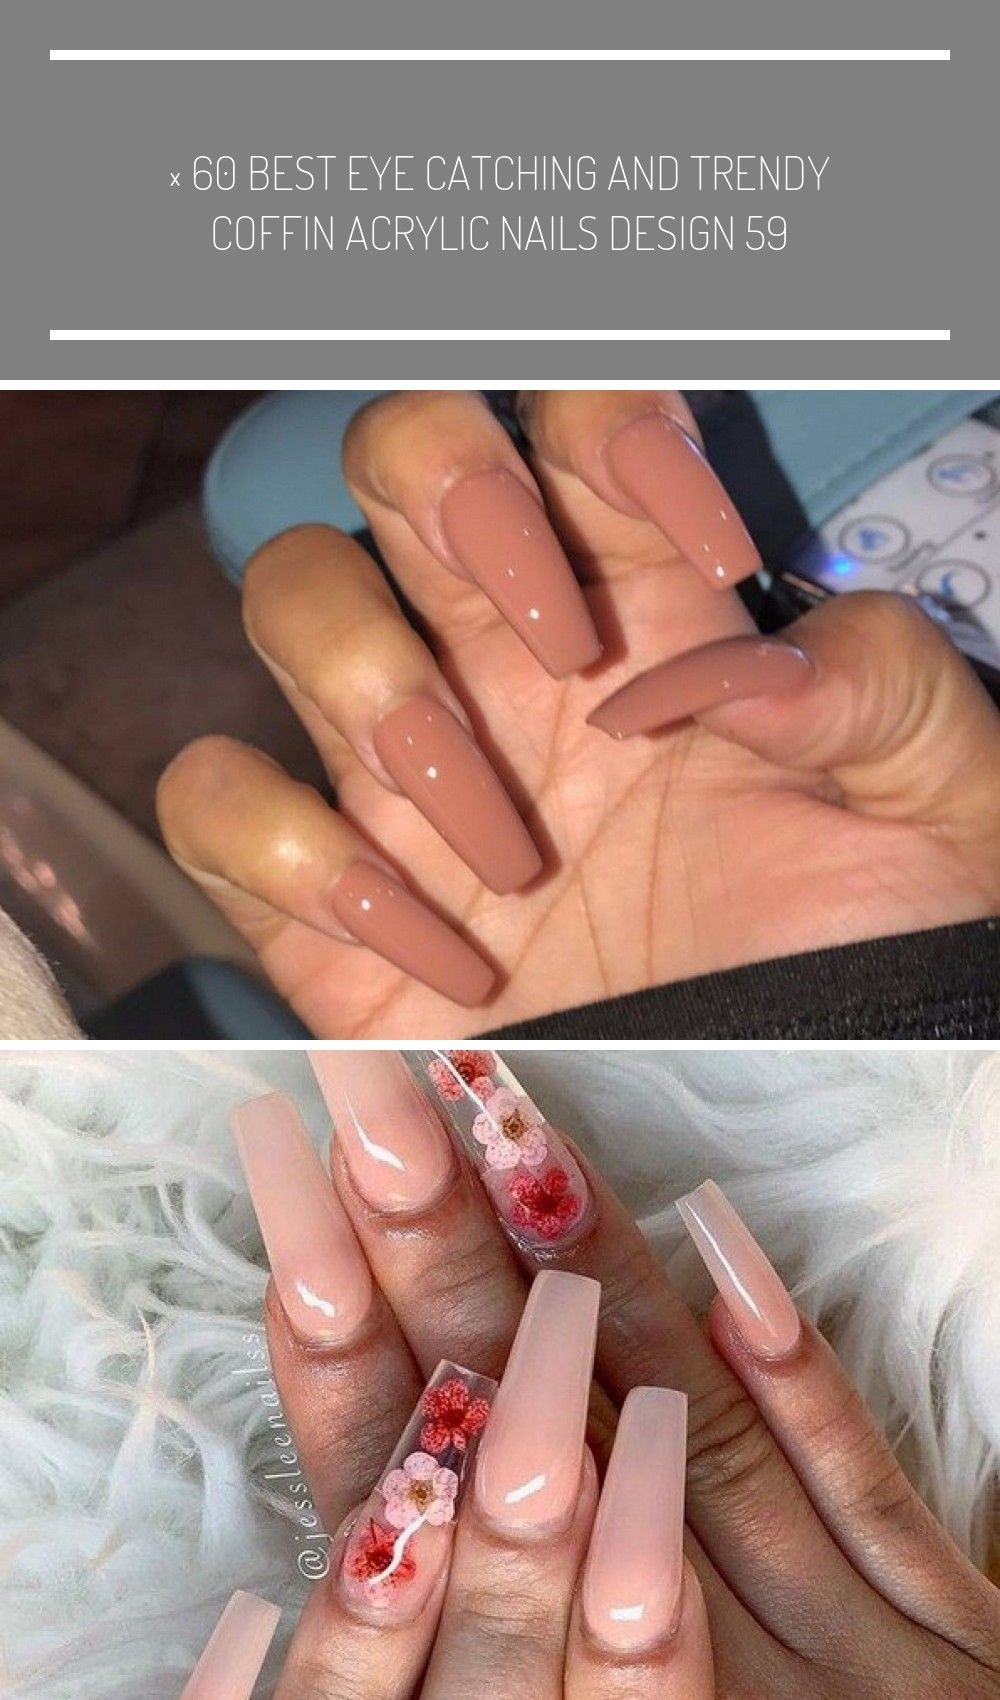 60 Best Eye Catching And Trendy Coffin Acrylic Nails Design 58 Long Nails 60 Best Eye Catching And Trendy Acrylic Nail Designs Acrylic Nails Coffin Nails